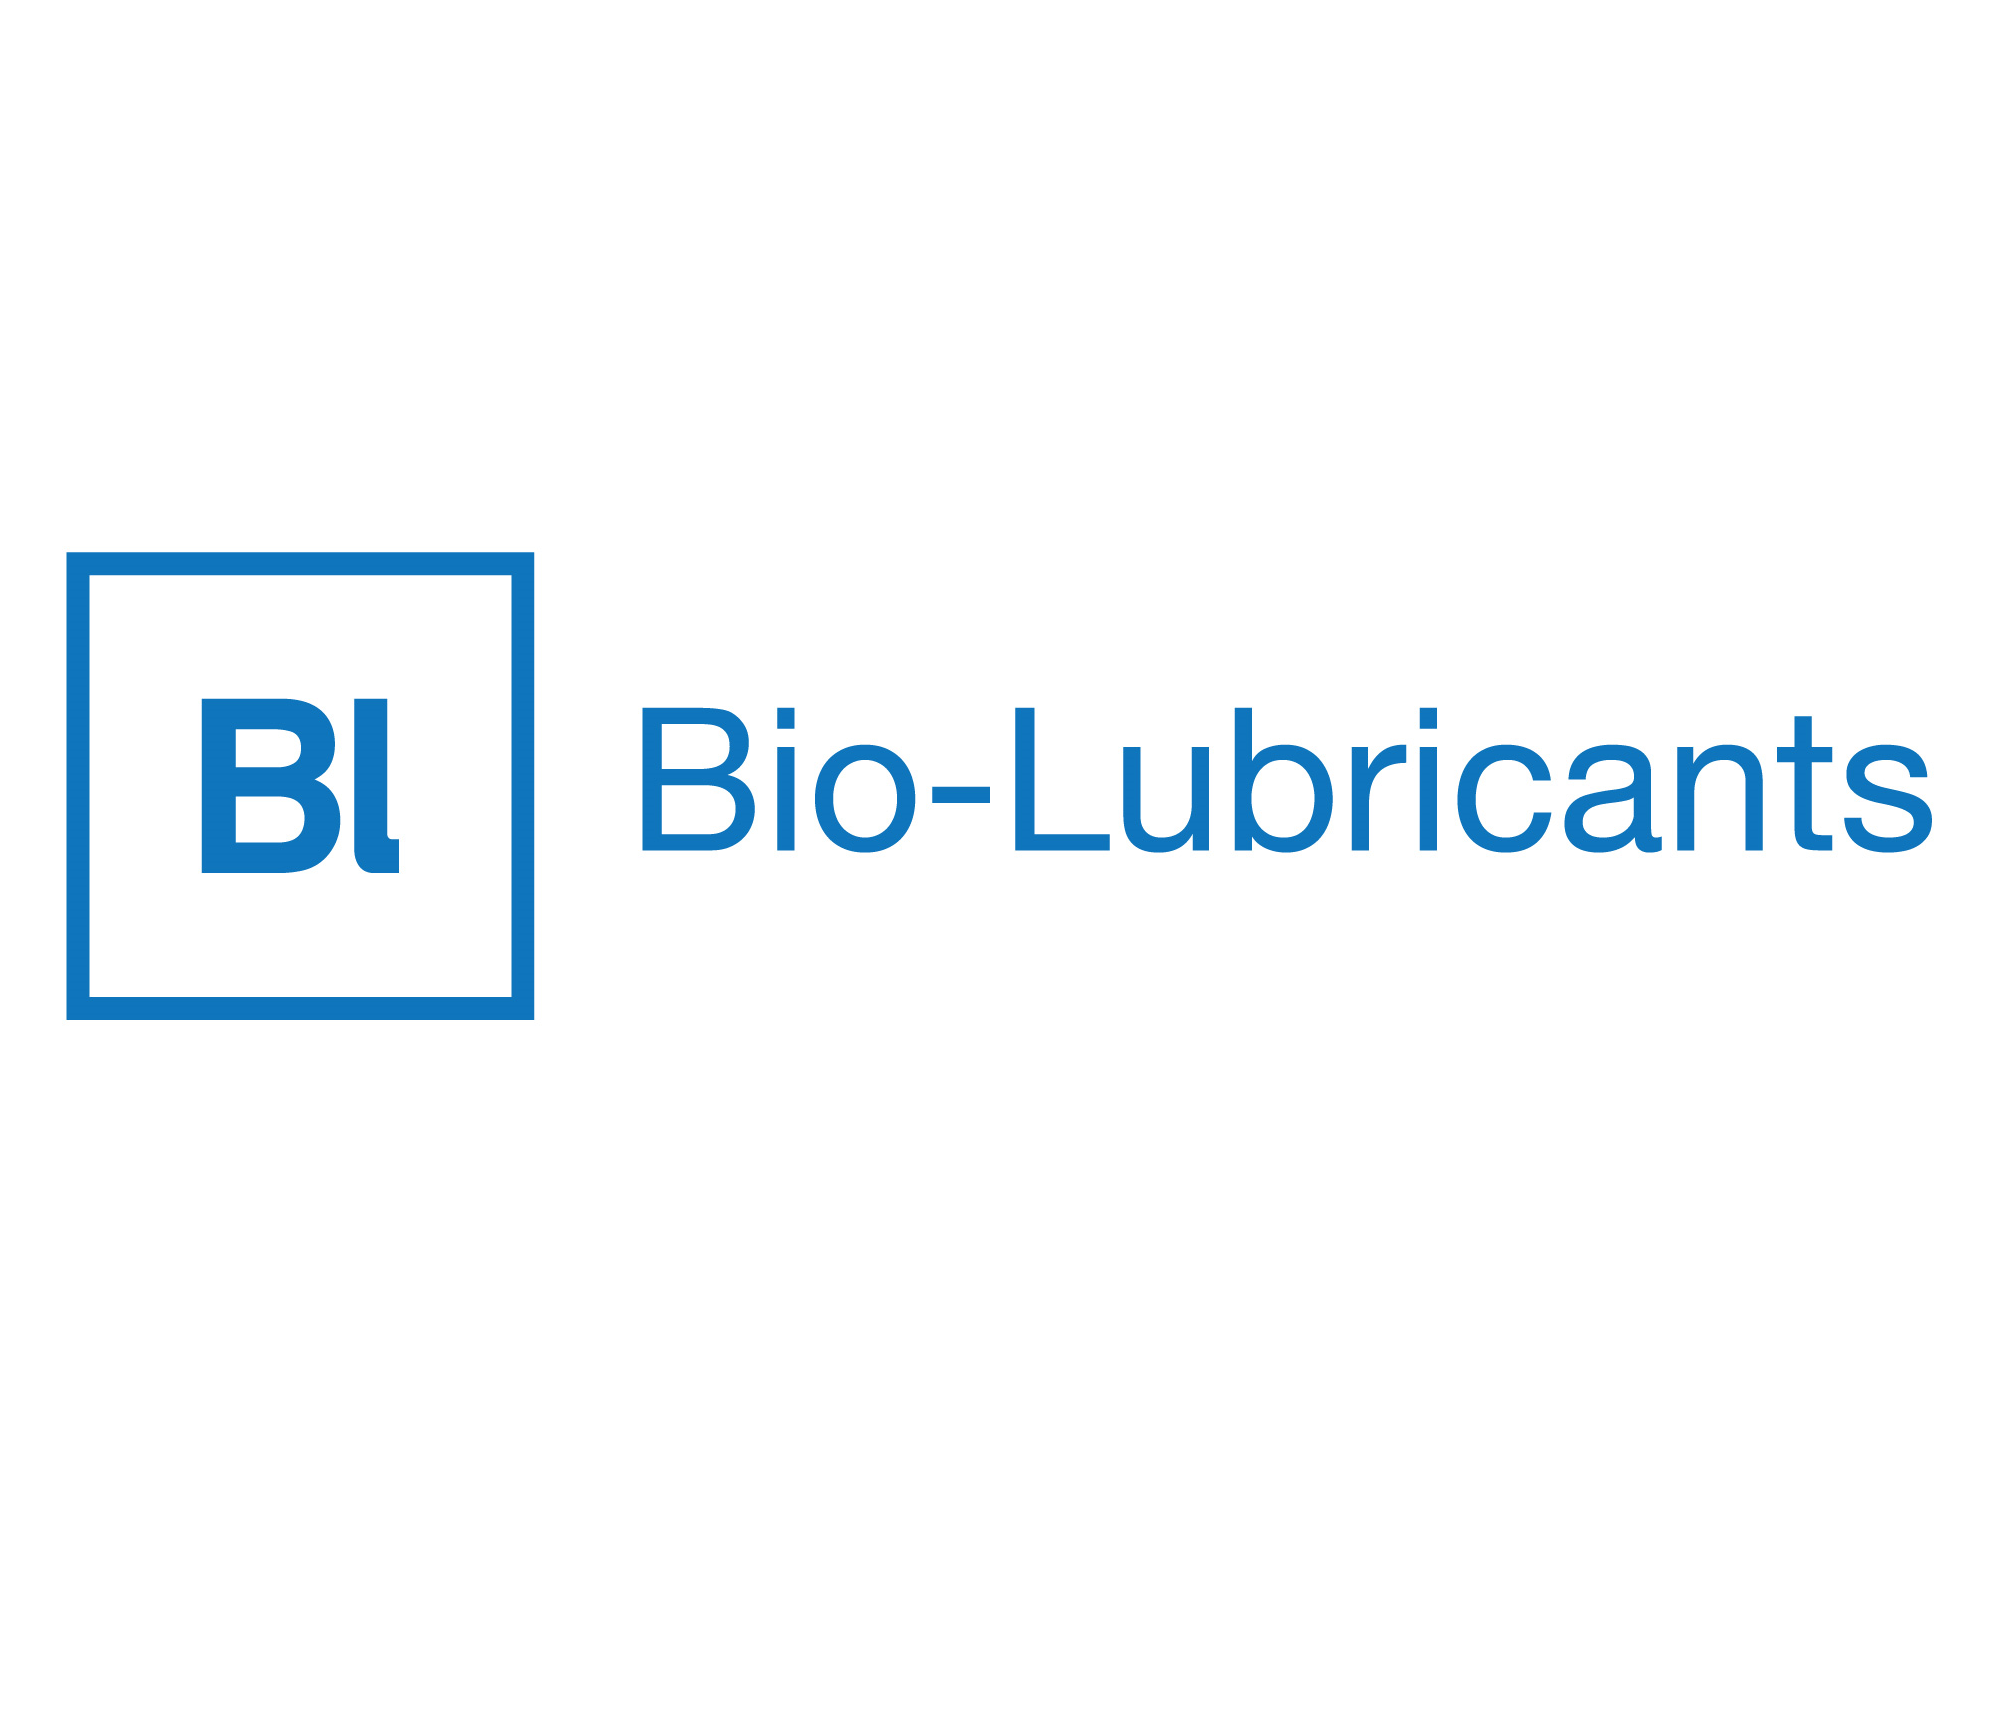 Emery Oleochemicals Expands Bio-Lubricants Commercial Team to Support Global Growth Strategy